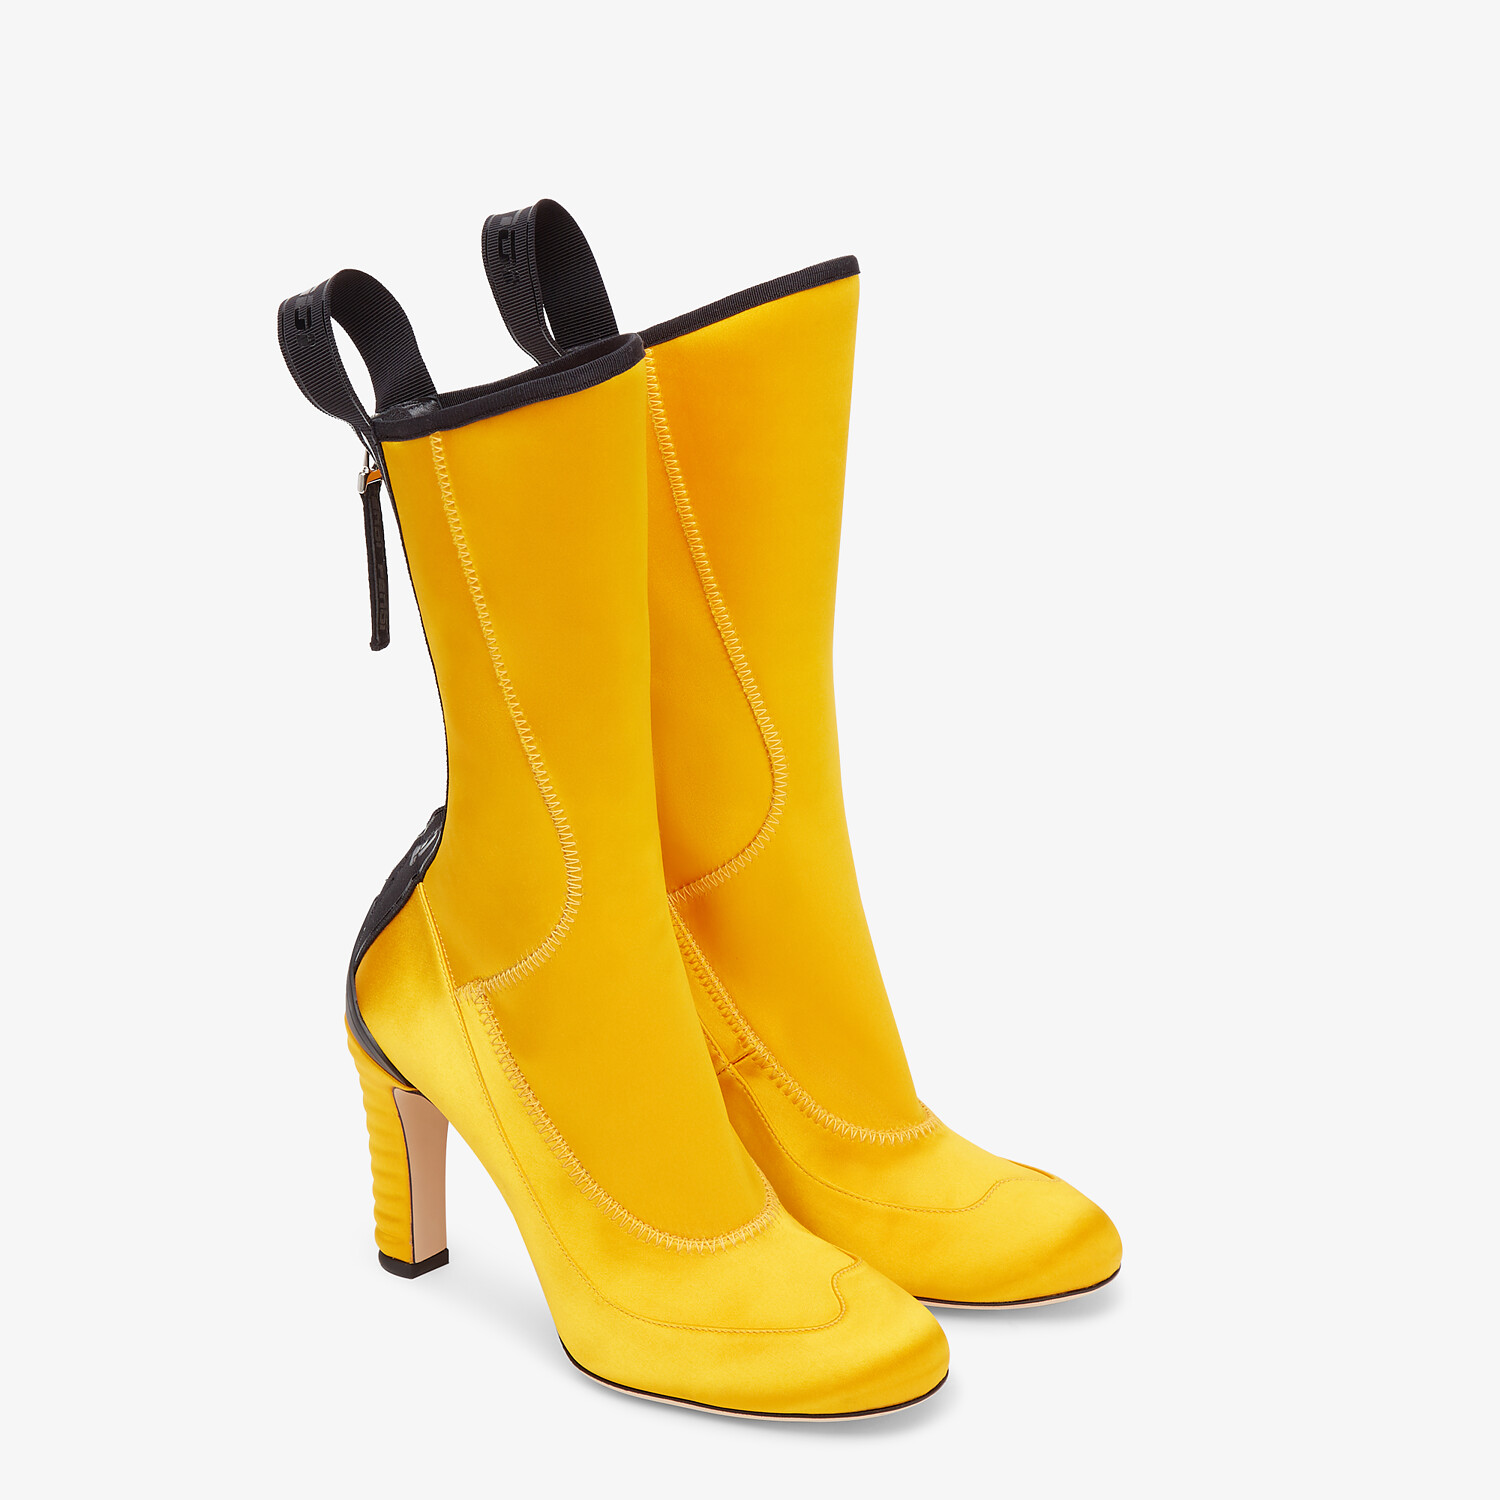 FENDI ANKLE BOOTS - Promenade Booties in yellow tech satin - view 4 detail